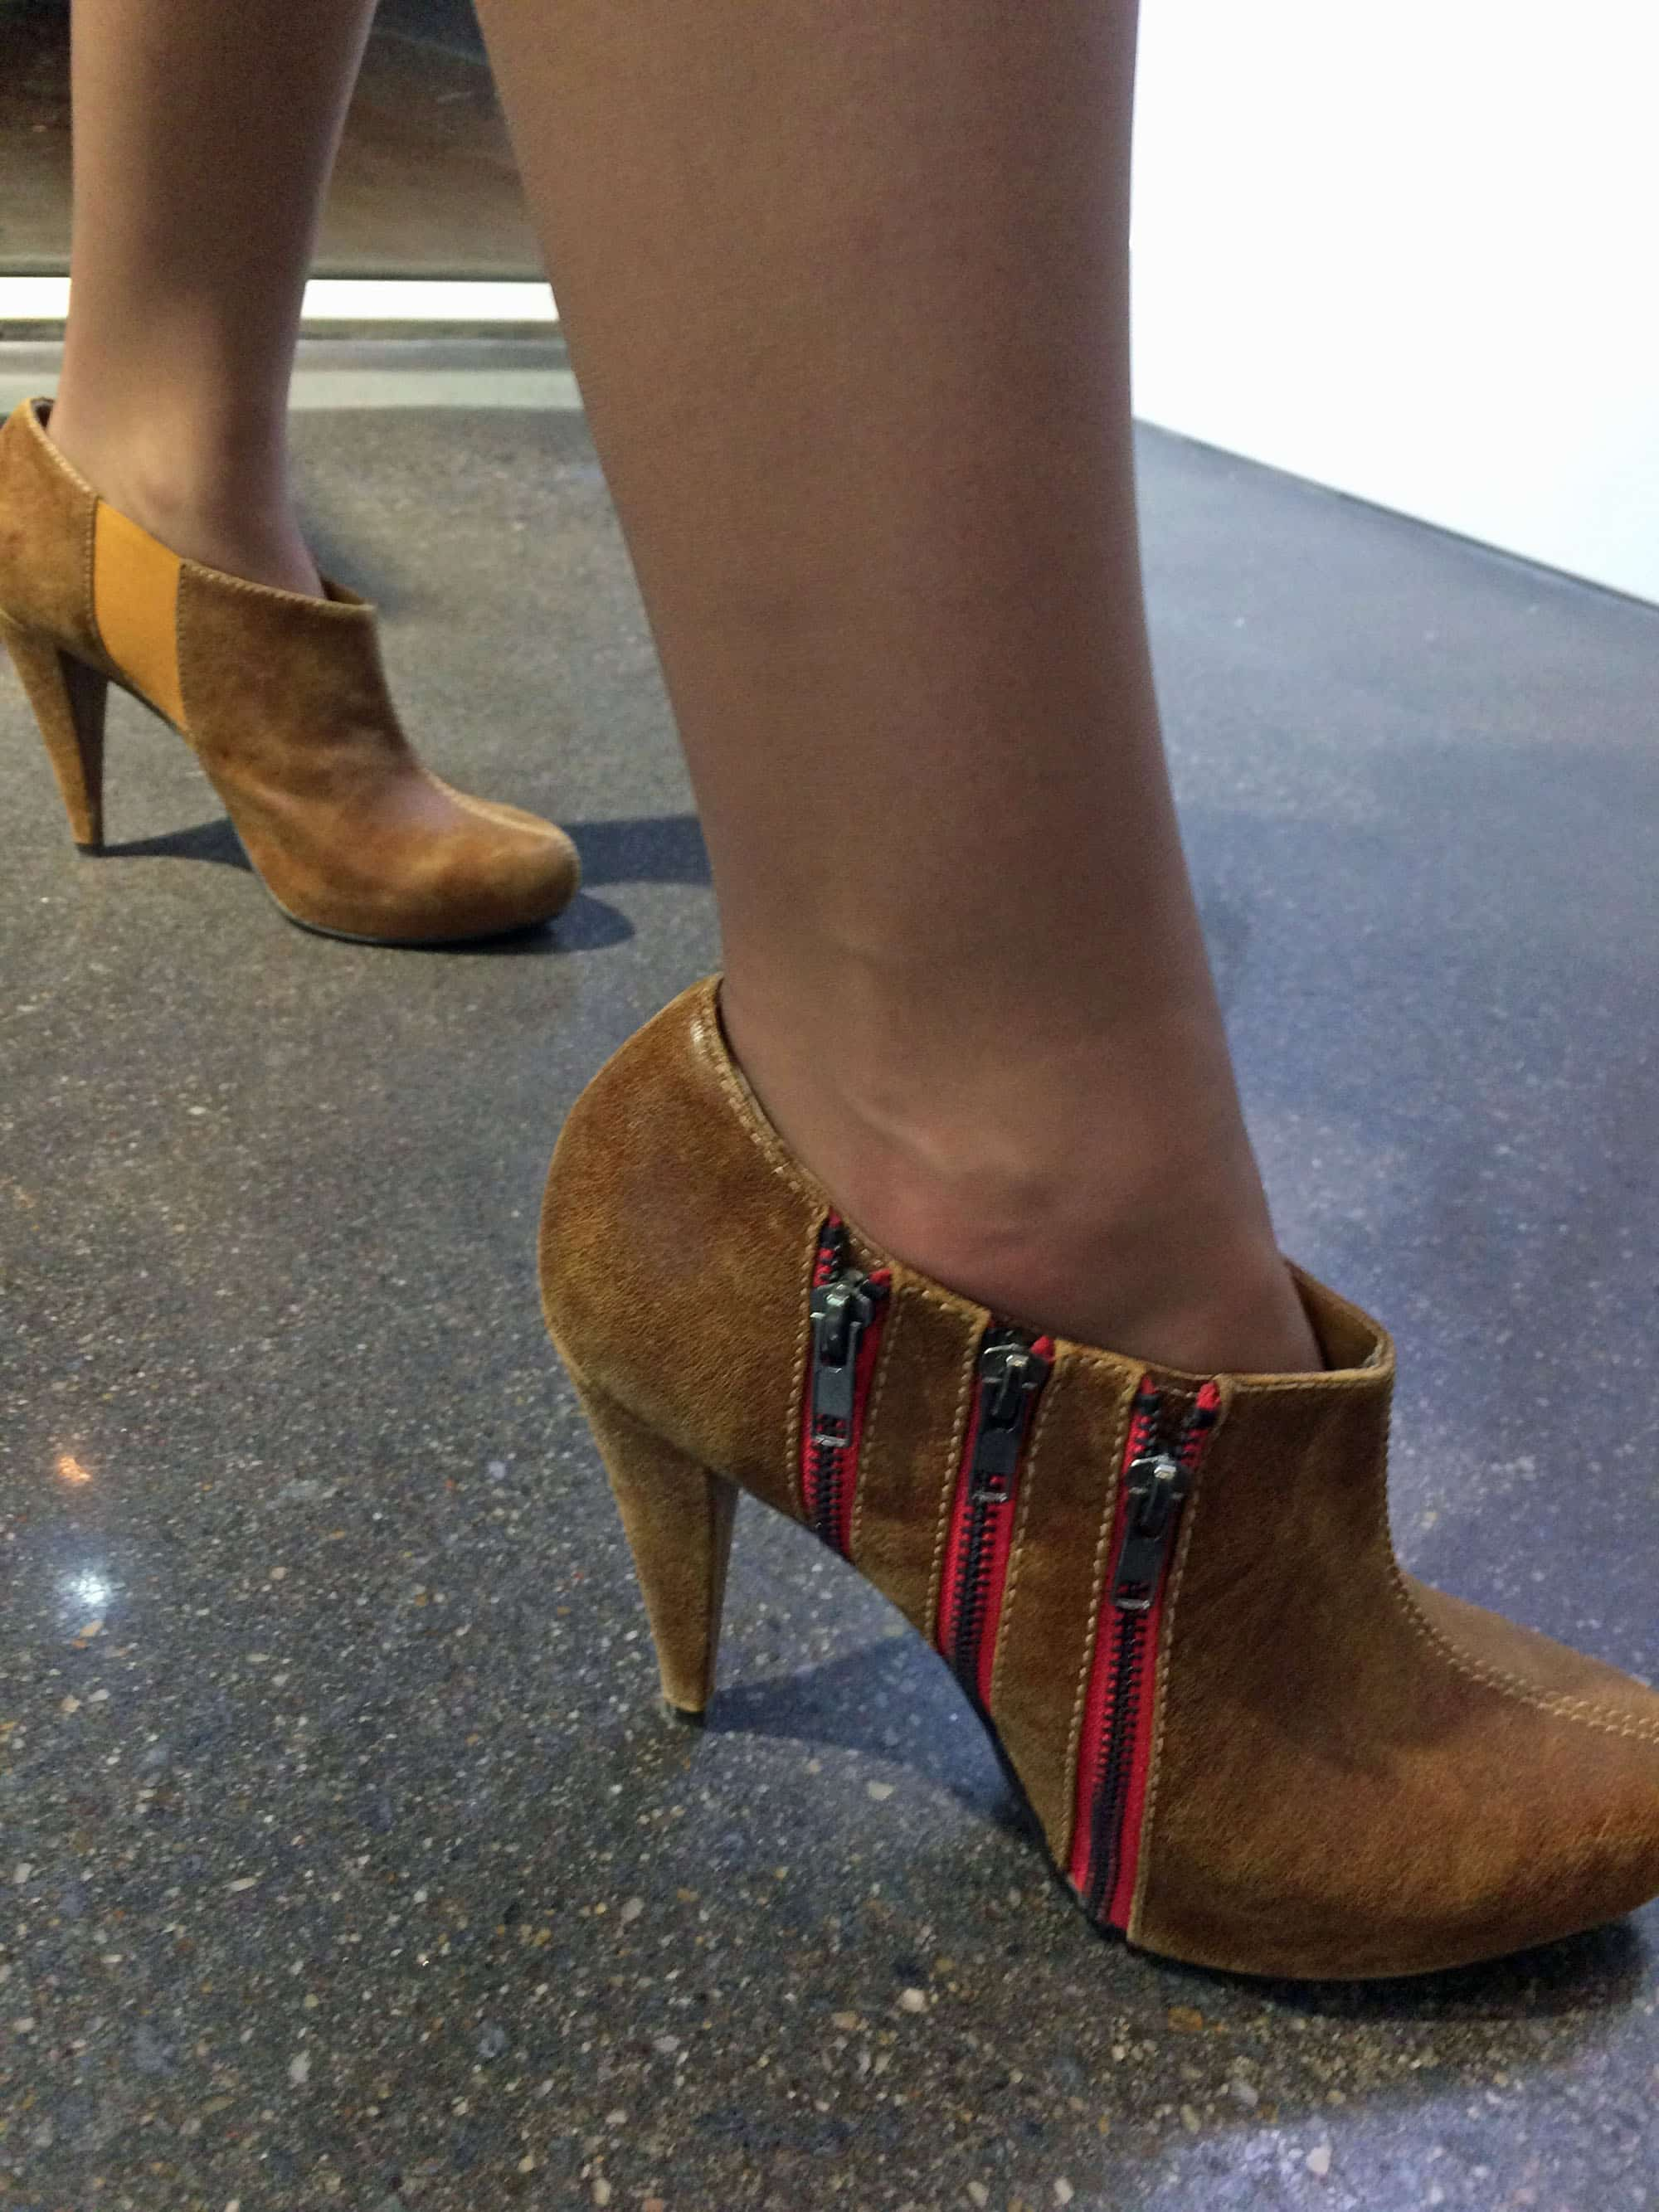 Also wearing Steve Madden shoes was Katie Caljean – tan suede booties with three bright red zippers.